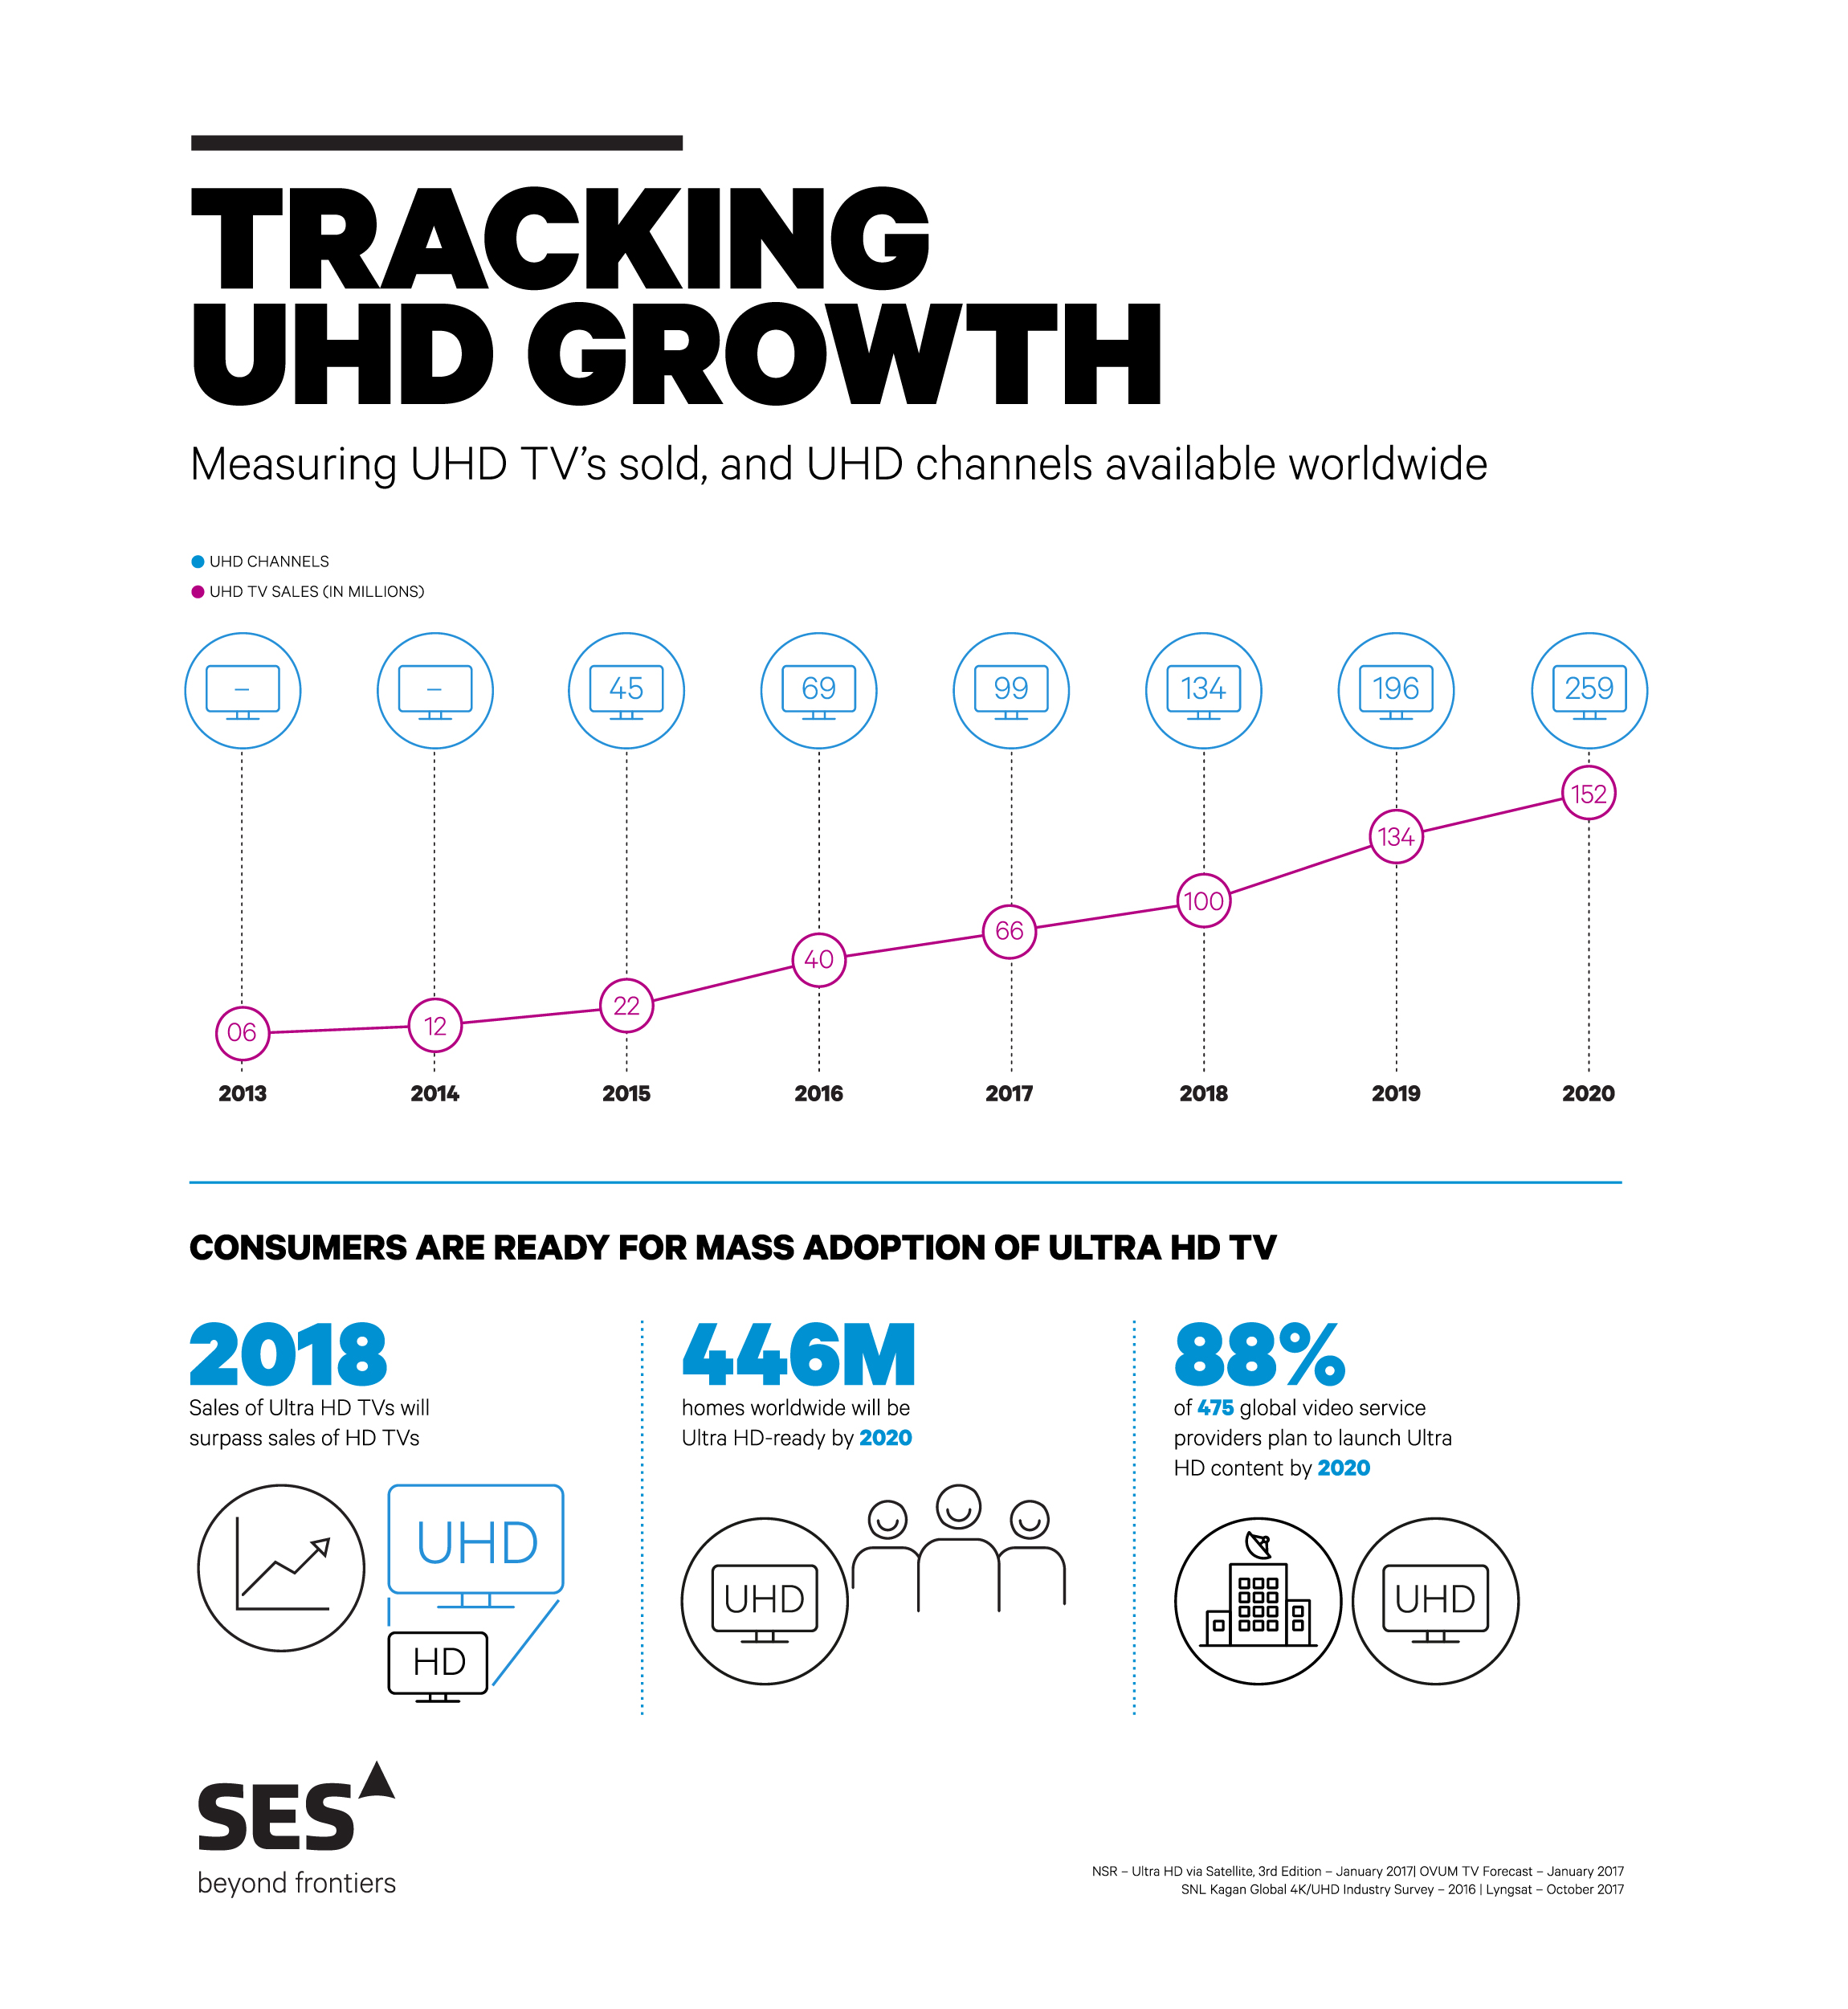 UHD Growth